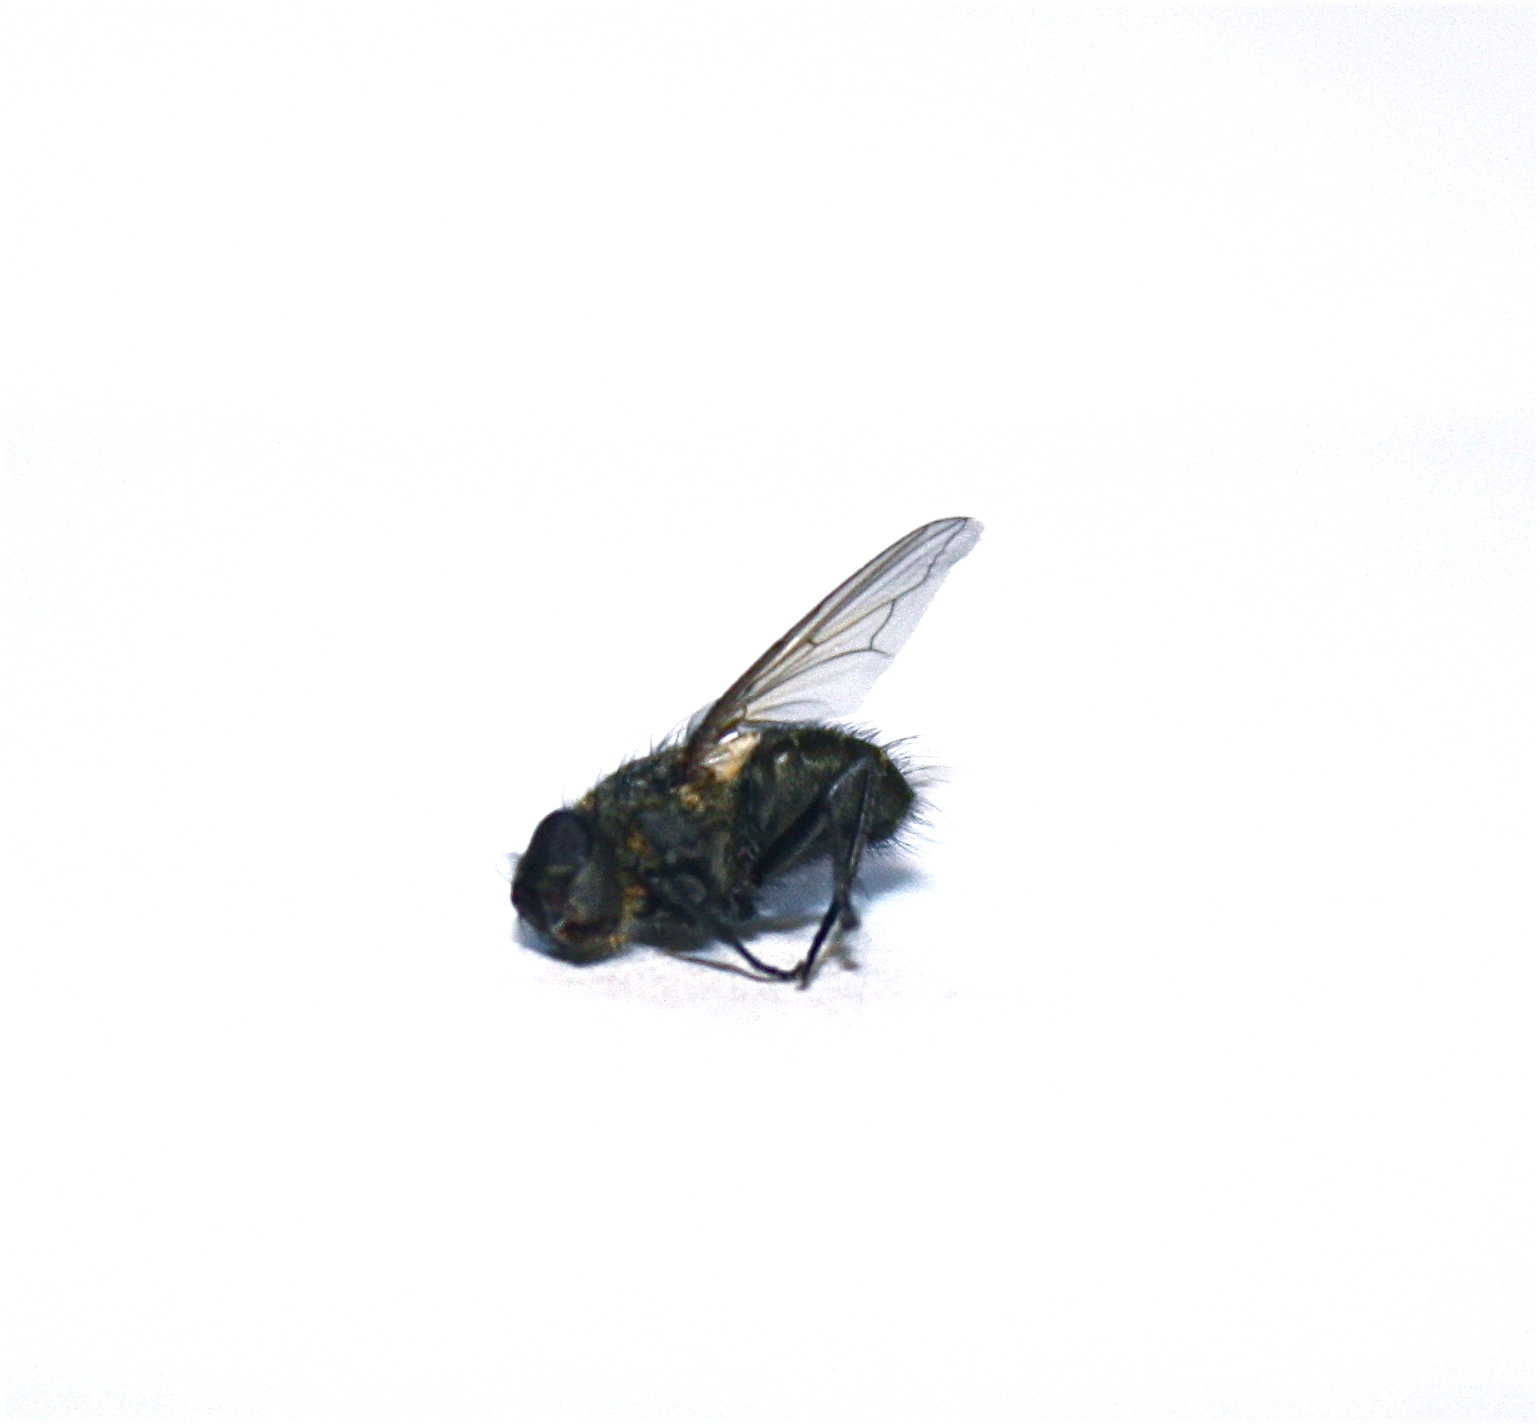 Finding Dead Flies In House http://insteadofanelephant.blogspot.com/2011_01_26_archive.html